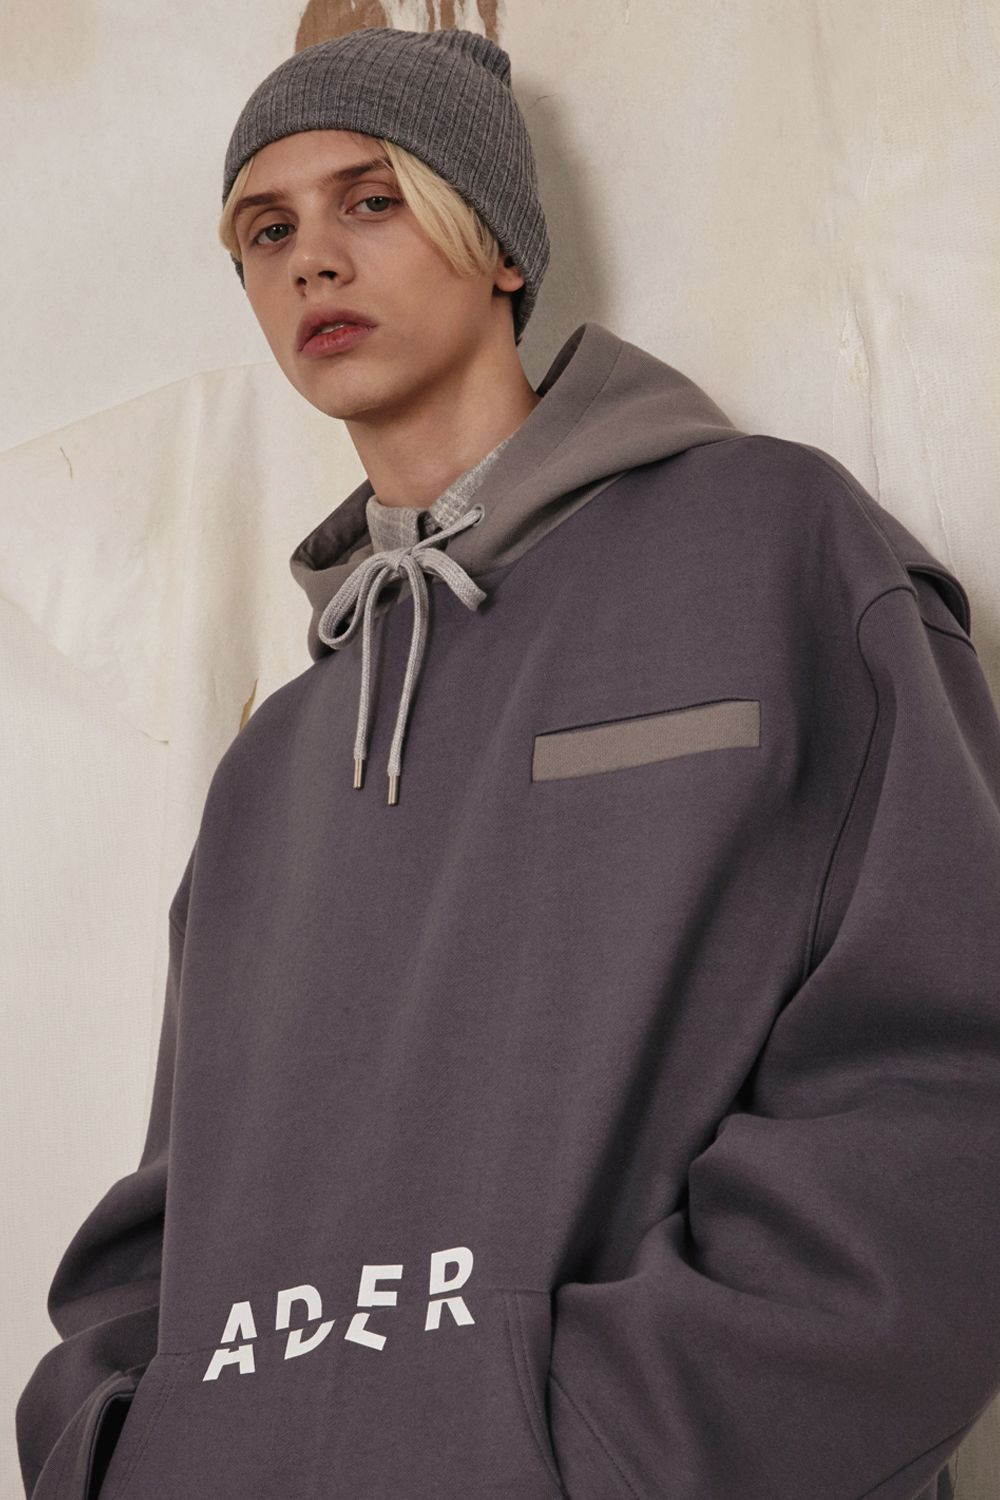 ADER error  Lookbook / Gen Z / Generation Z / Korean / Brand / Fashion / Hoodie / Boy / Teen